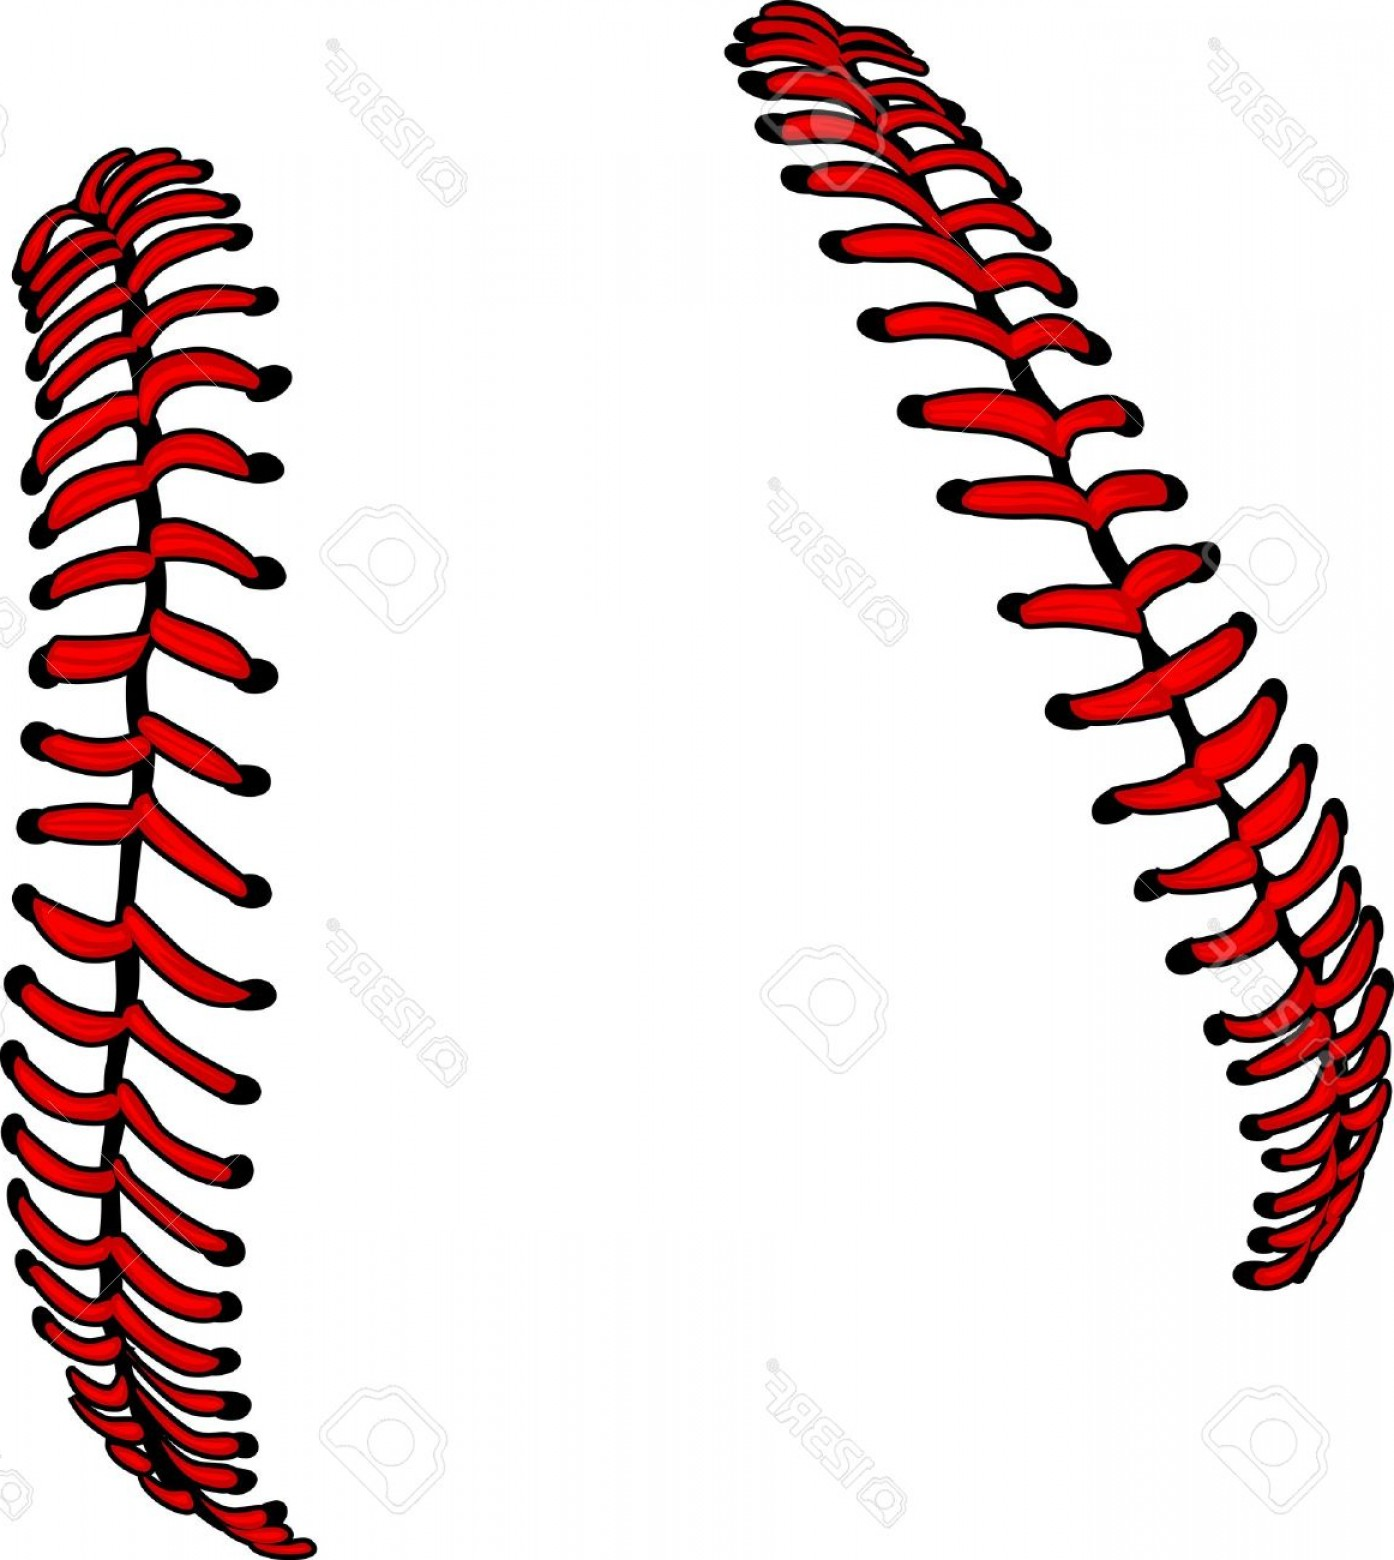 Laces Basball Vector: Photobaseball Laces Or Softball Laces Vector Image